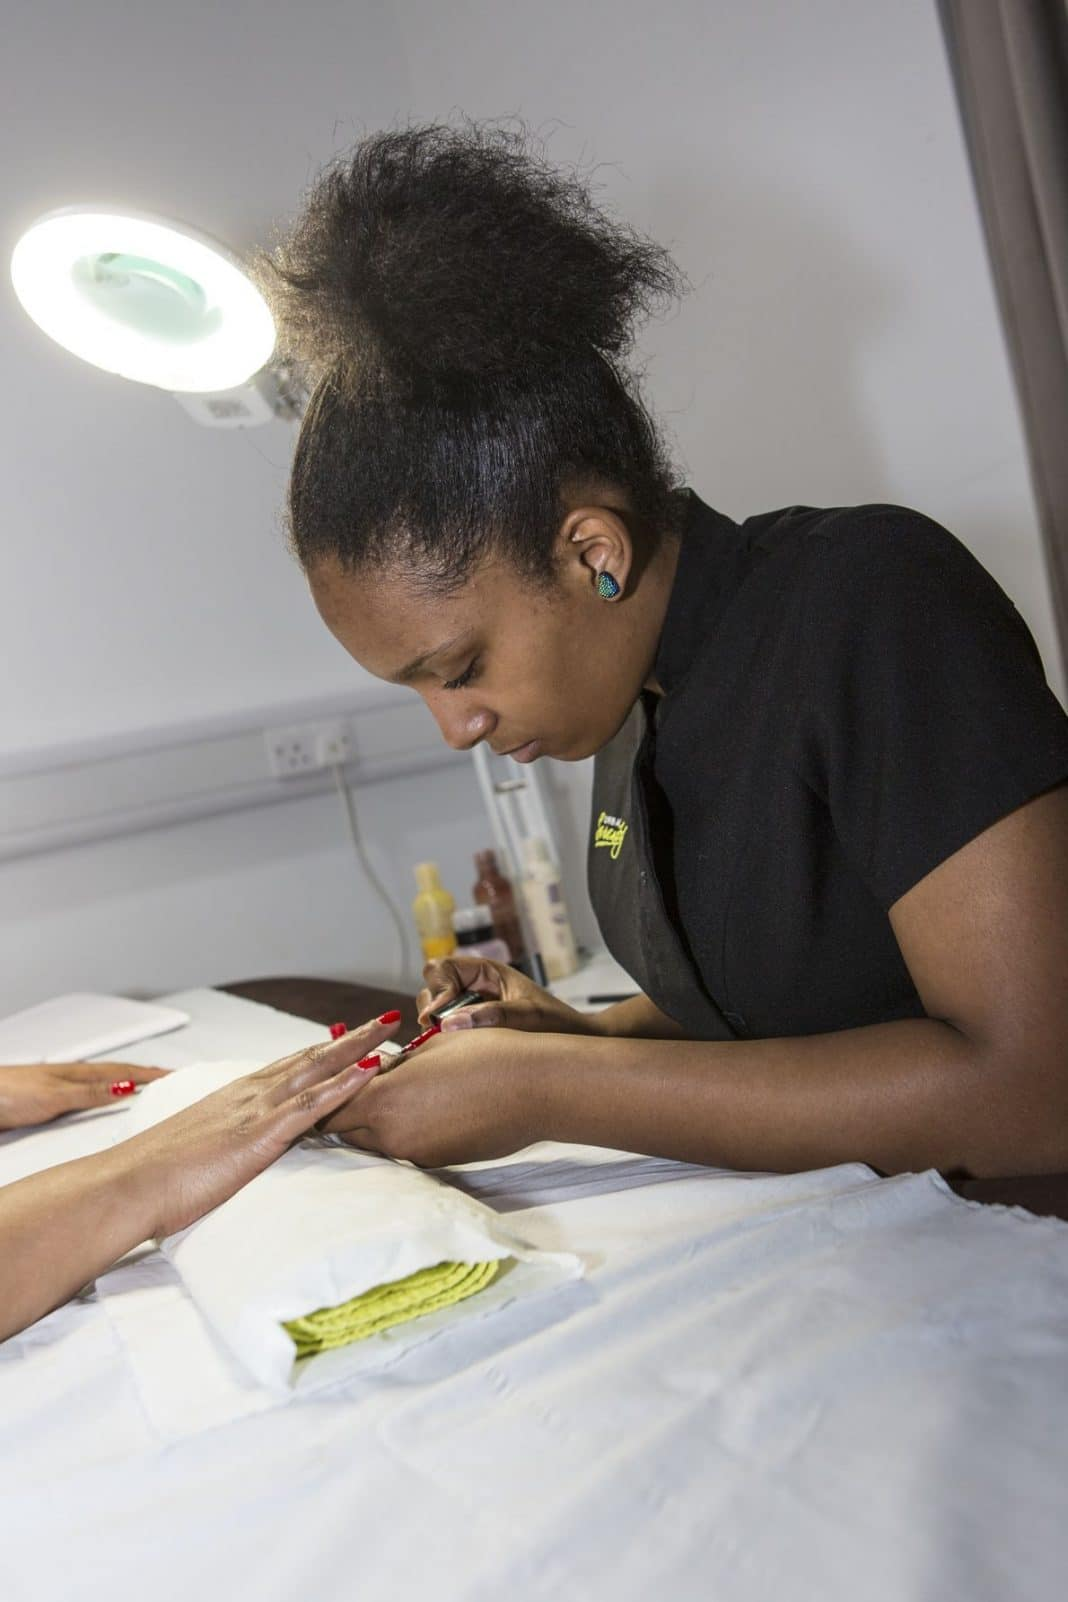 The team of trainee hairdressers from Bournville College will be offering the free hair, beauty and nail treatments, plus children's face-painting, at Northfield Shopping Centre on April 26.